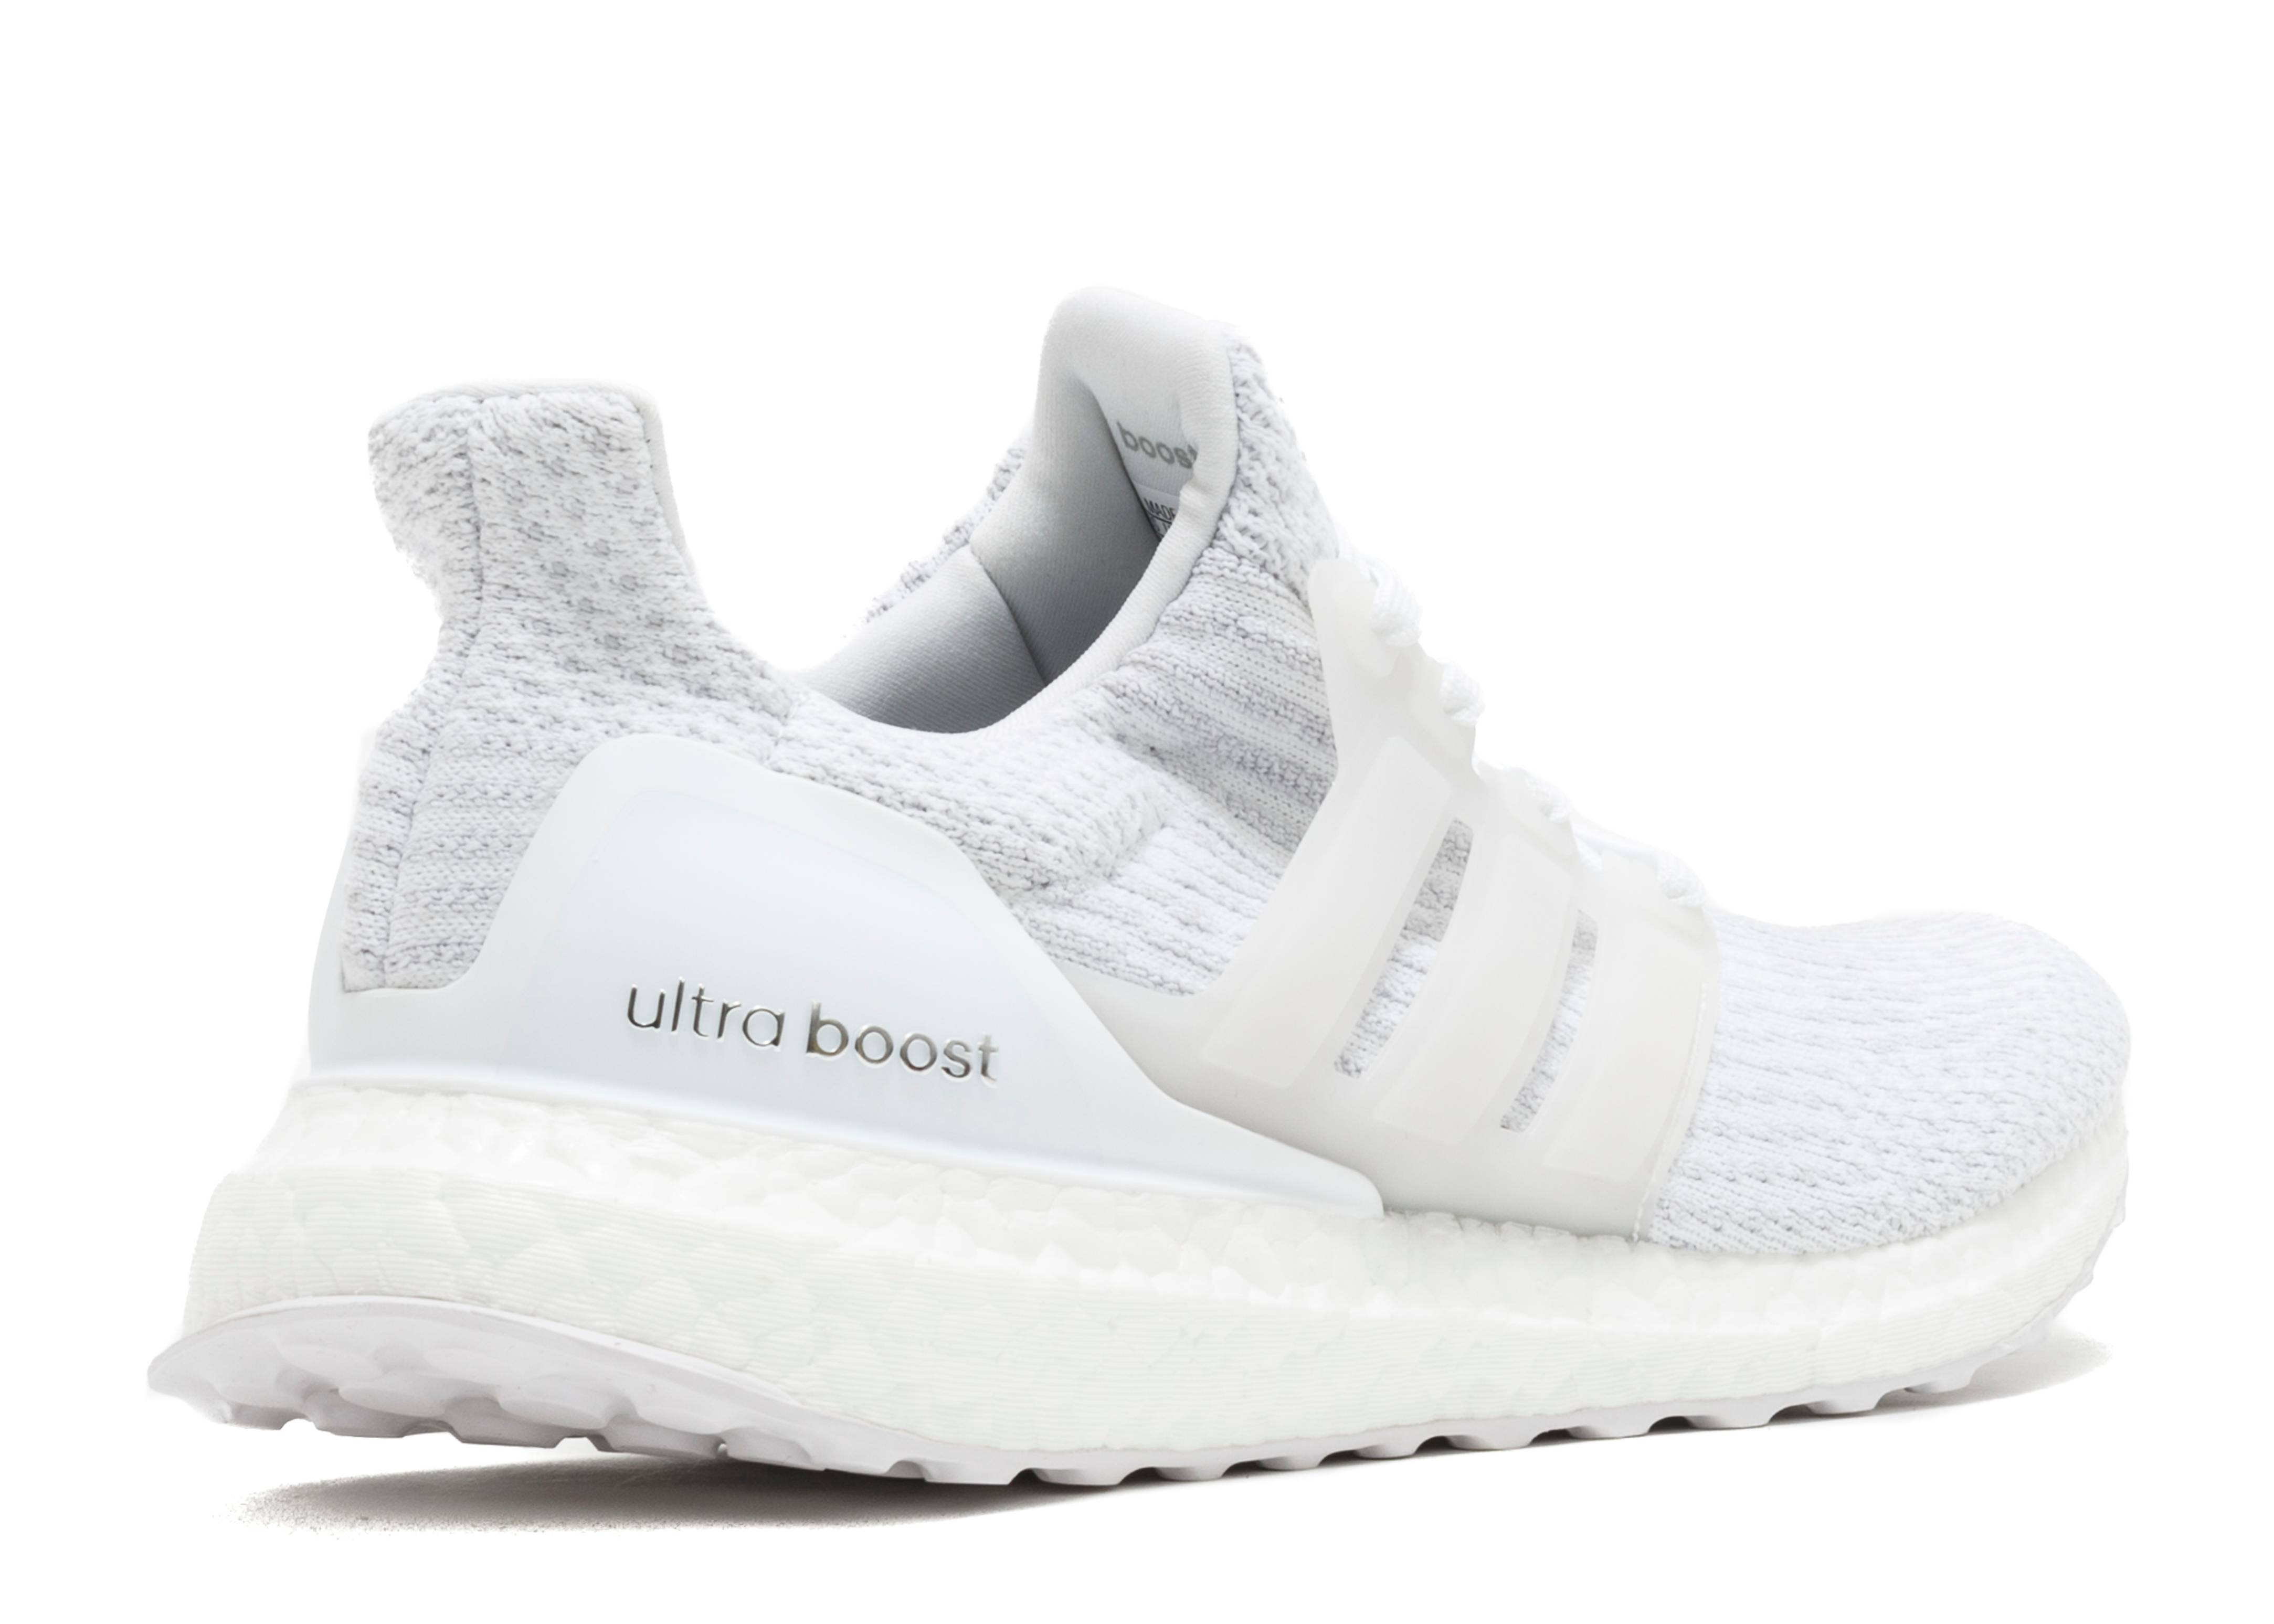 Adidas Ultra Boost Triple White 3.0